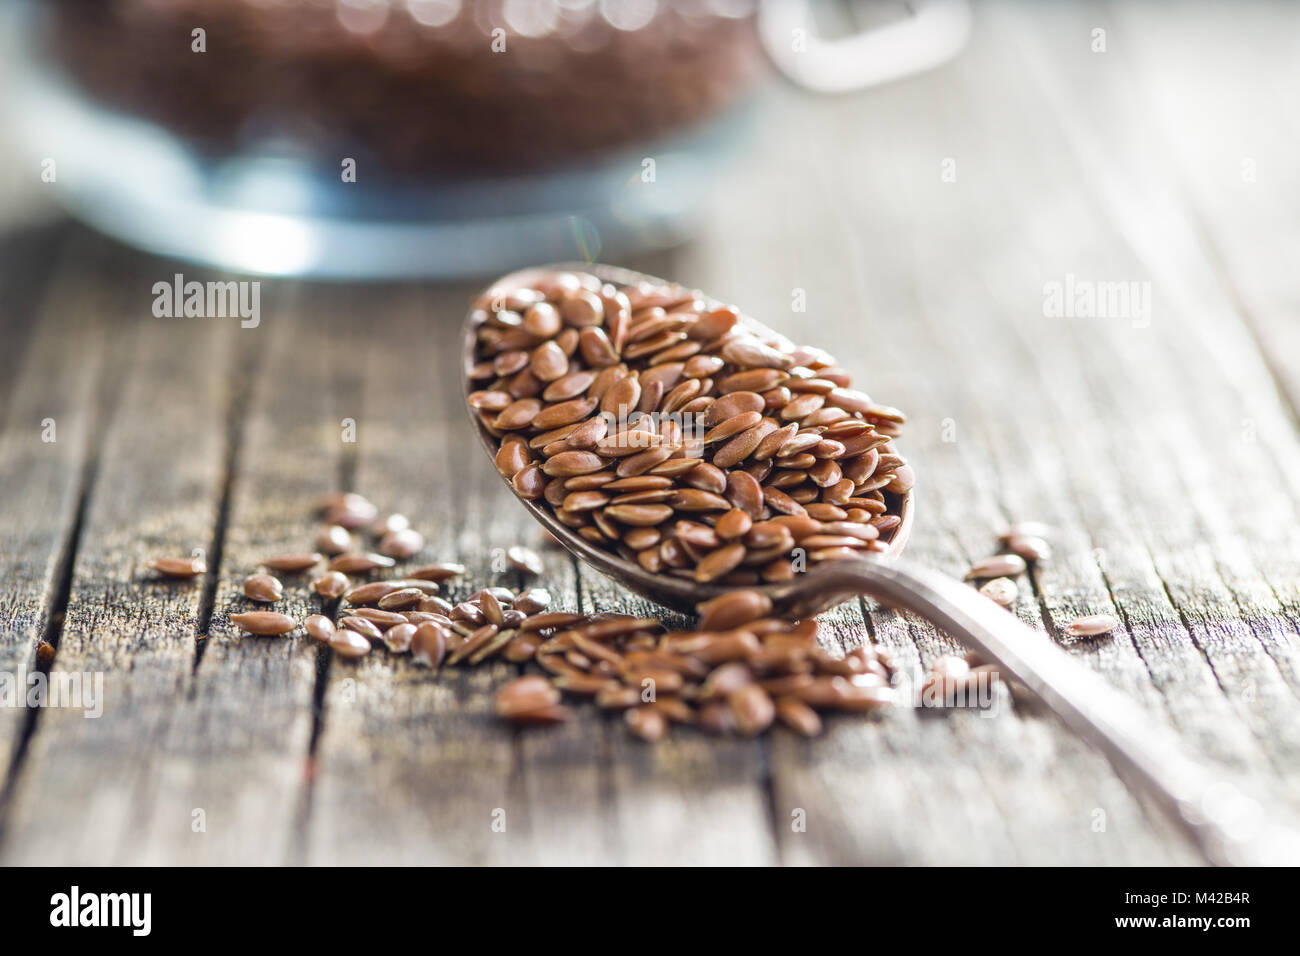 Healthy brown linseed in spoon. - Stock Image